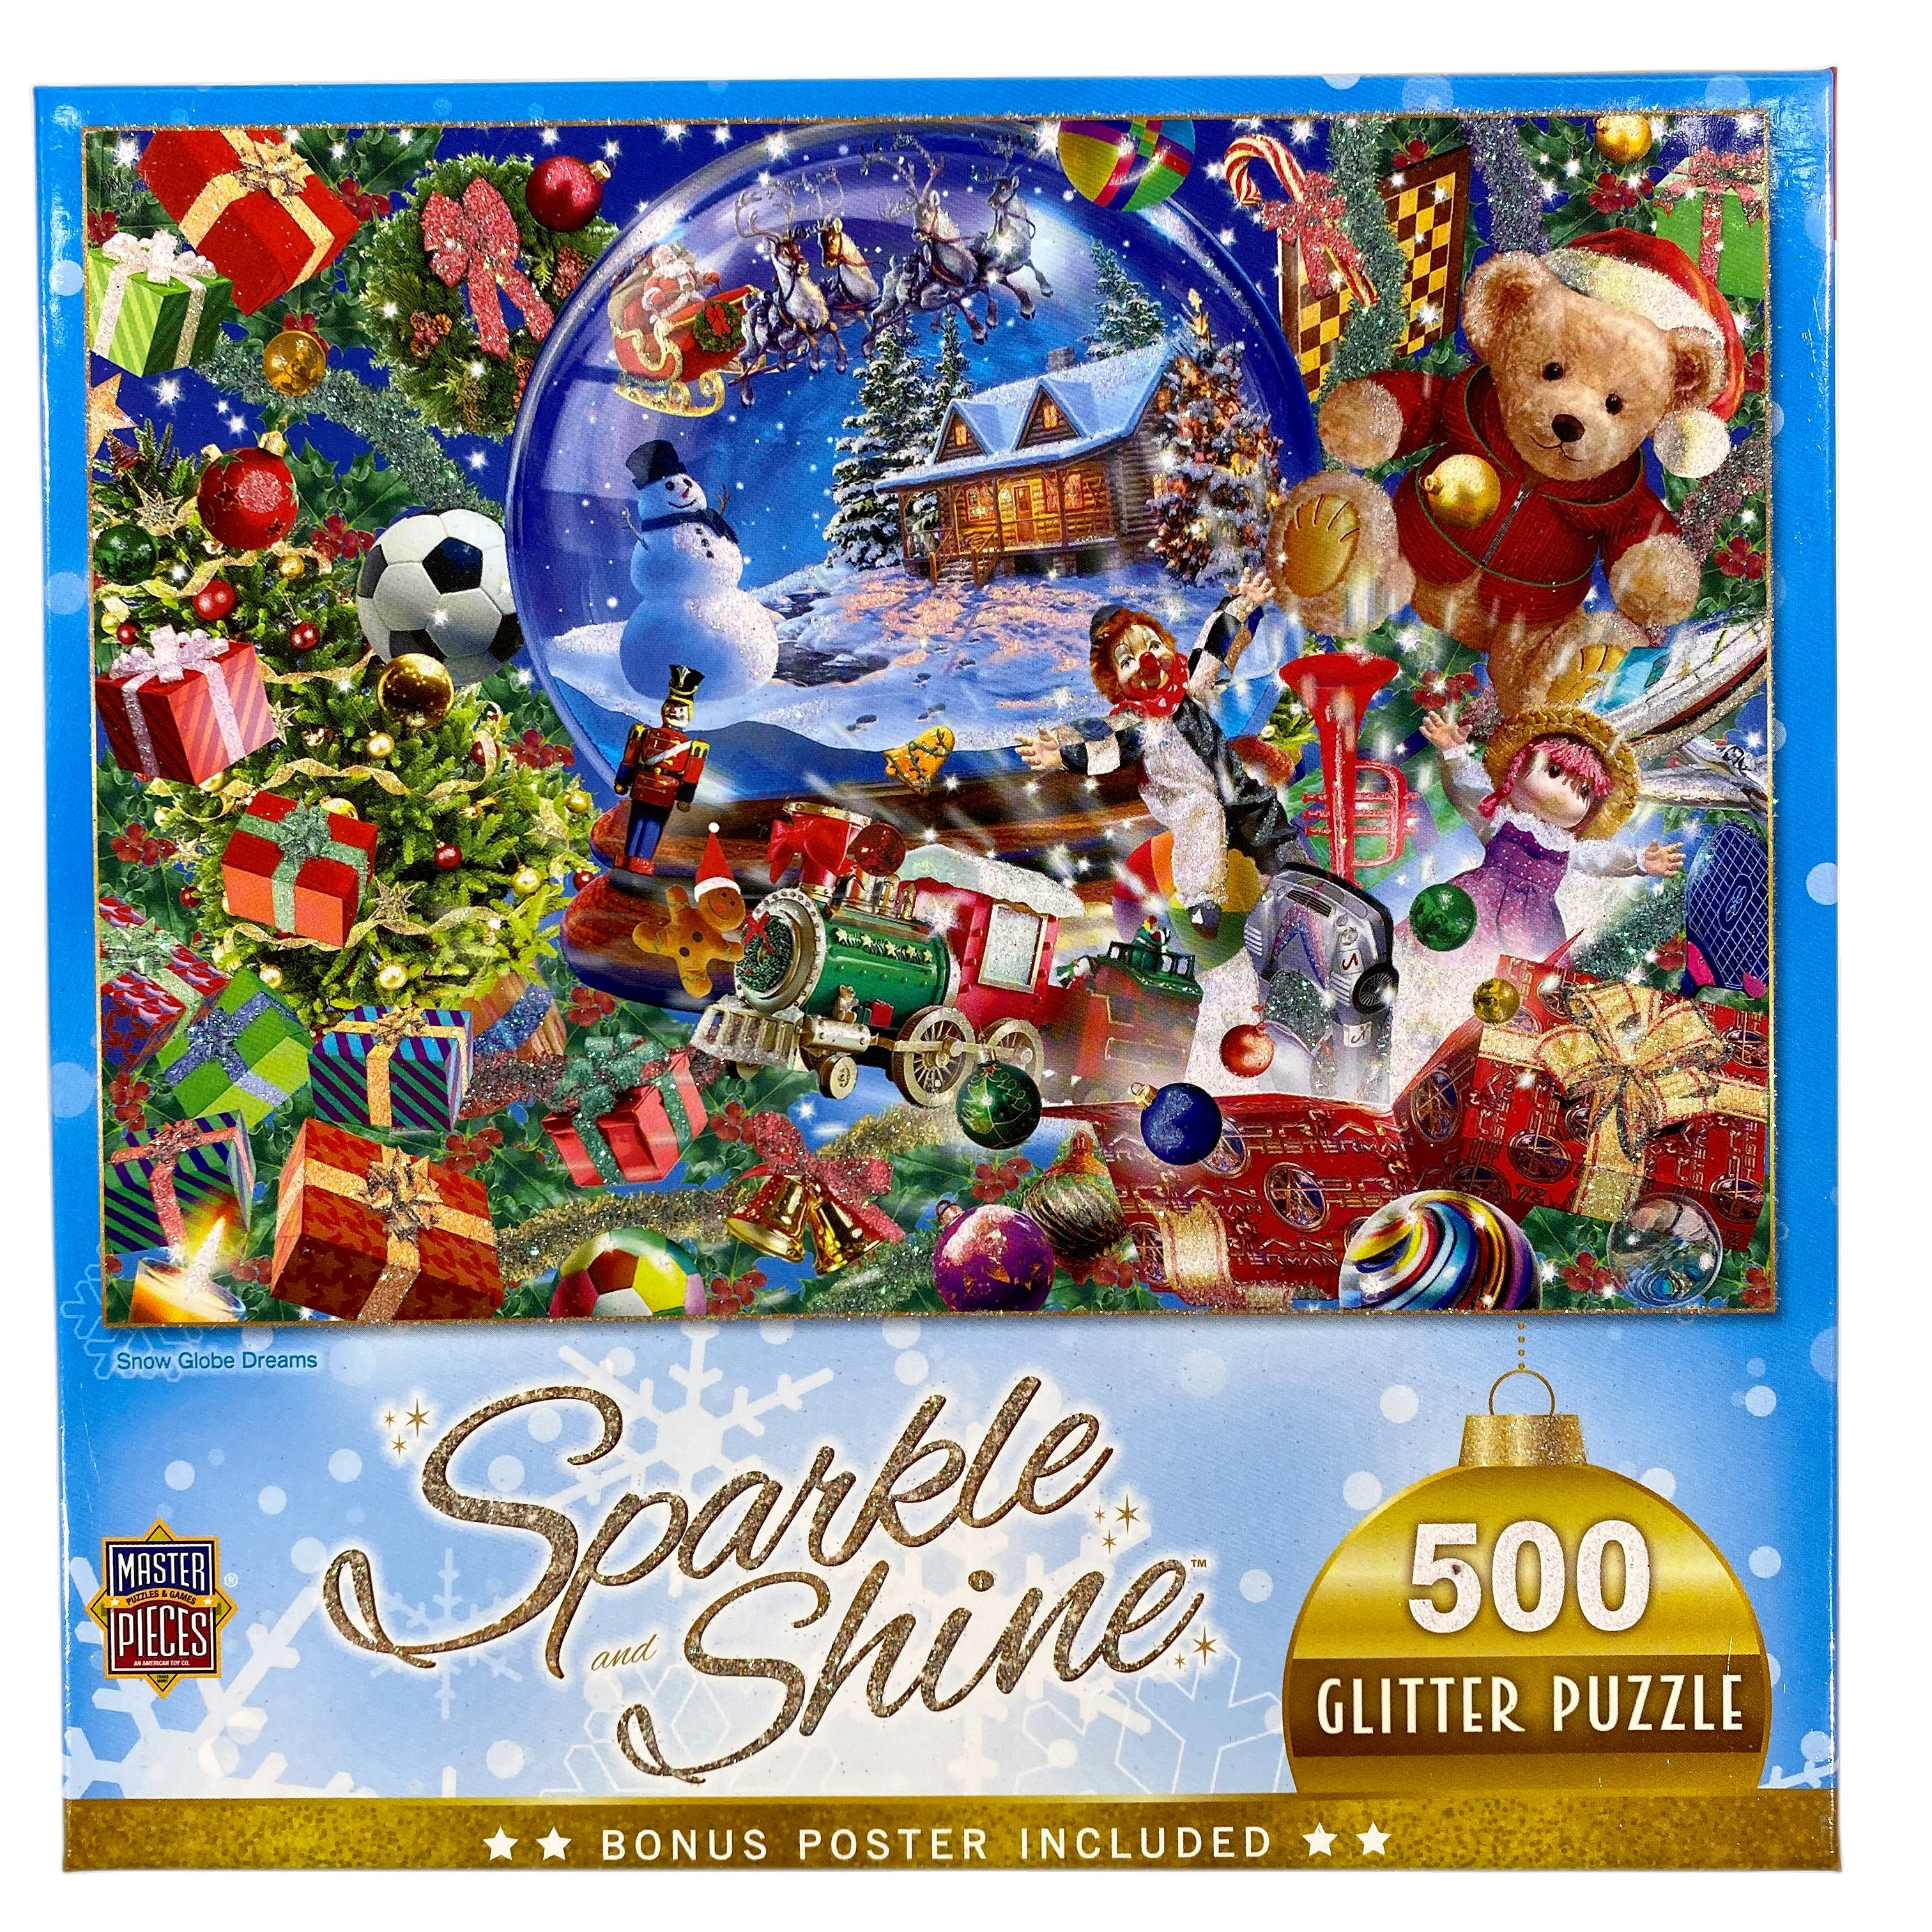 Snow Globe Dreams 500 Piece Sparkle & Shine Glitter Puzzle